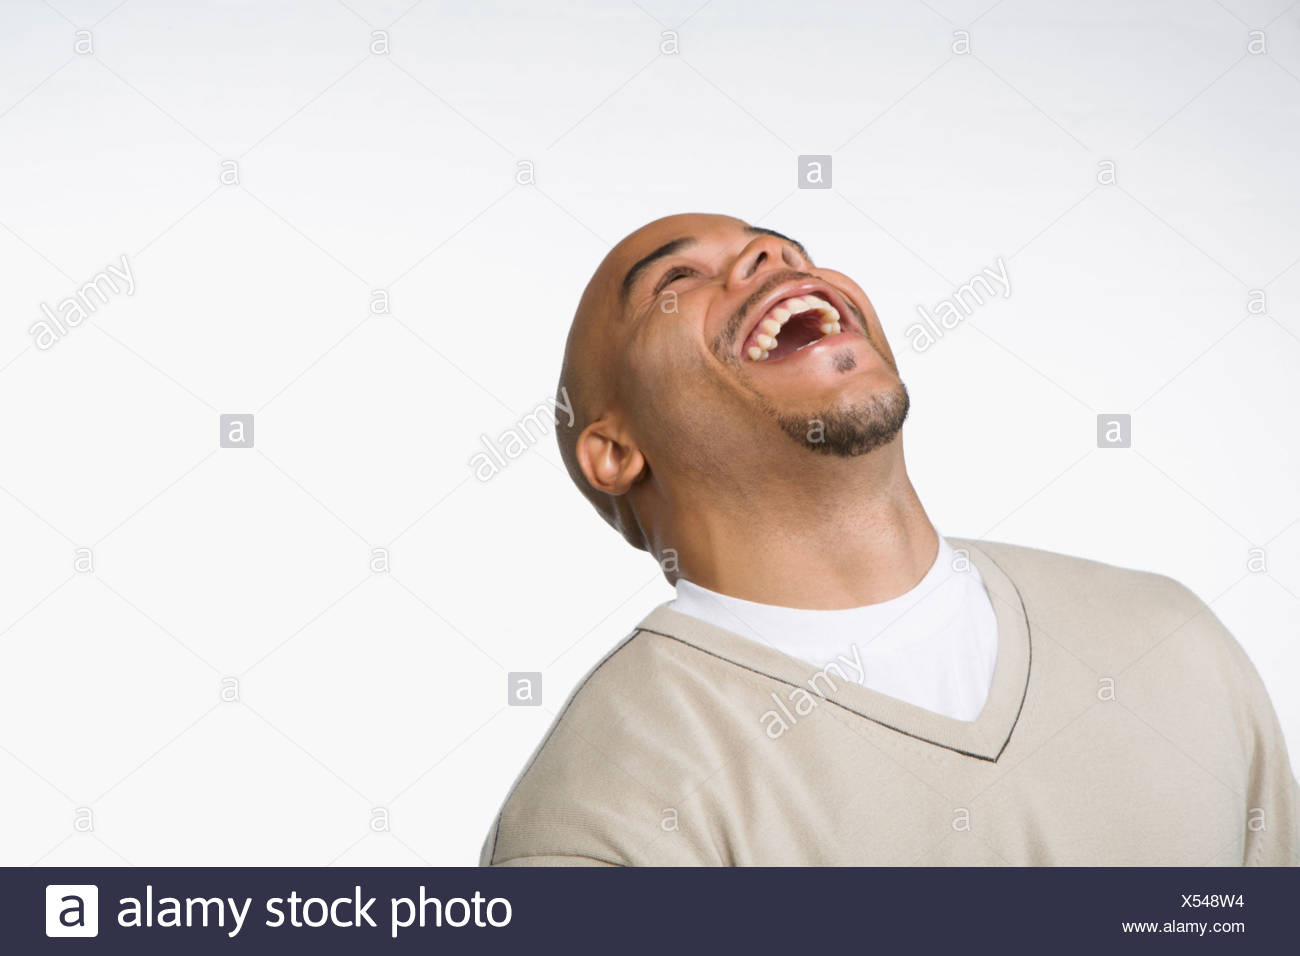 Man laughing with head thrown back Stock Photo